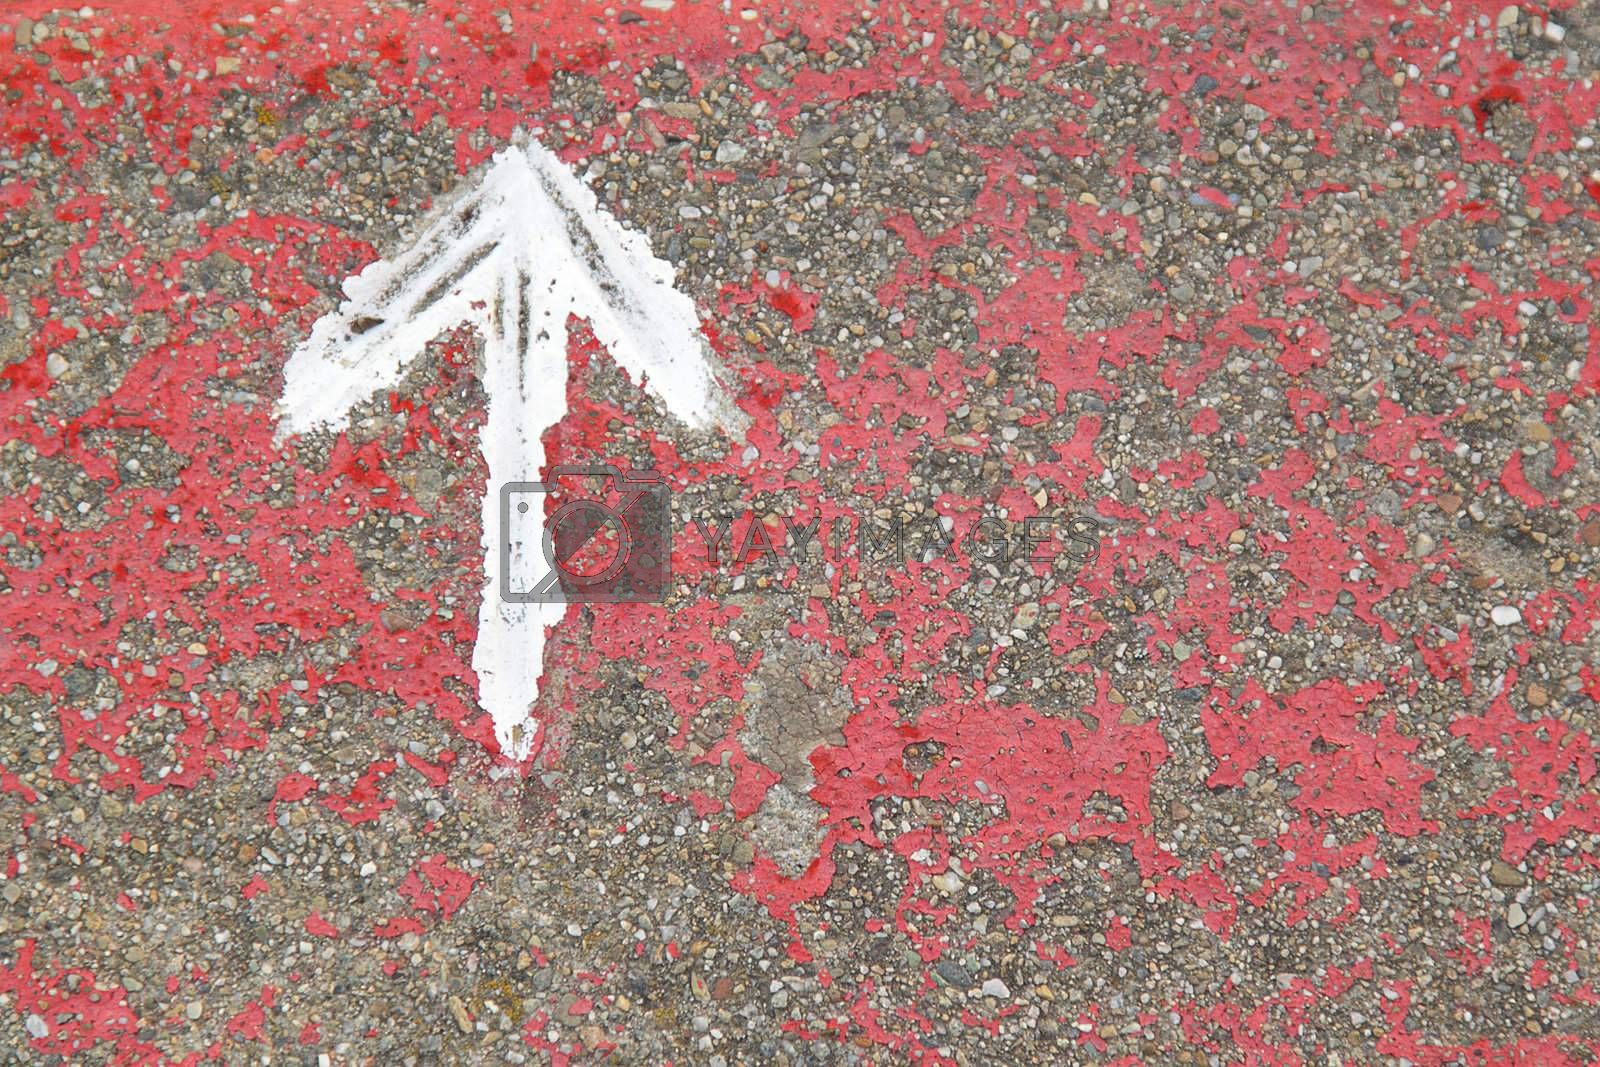 White painted arrow on reddish and gray asphalt